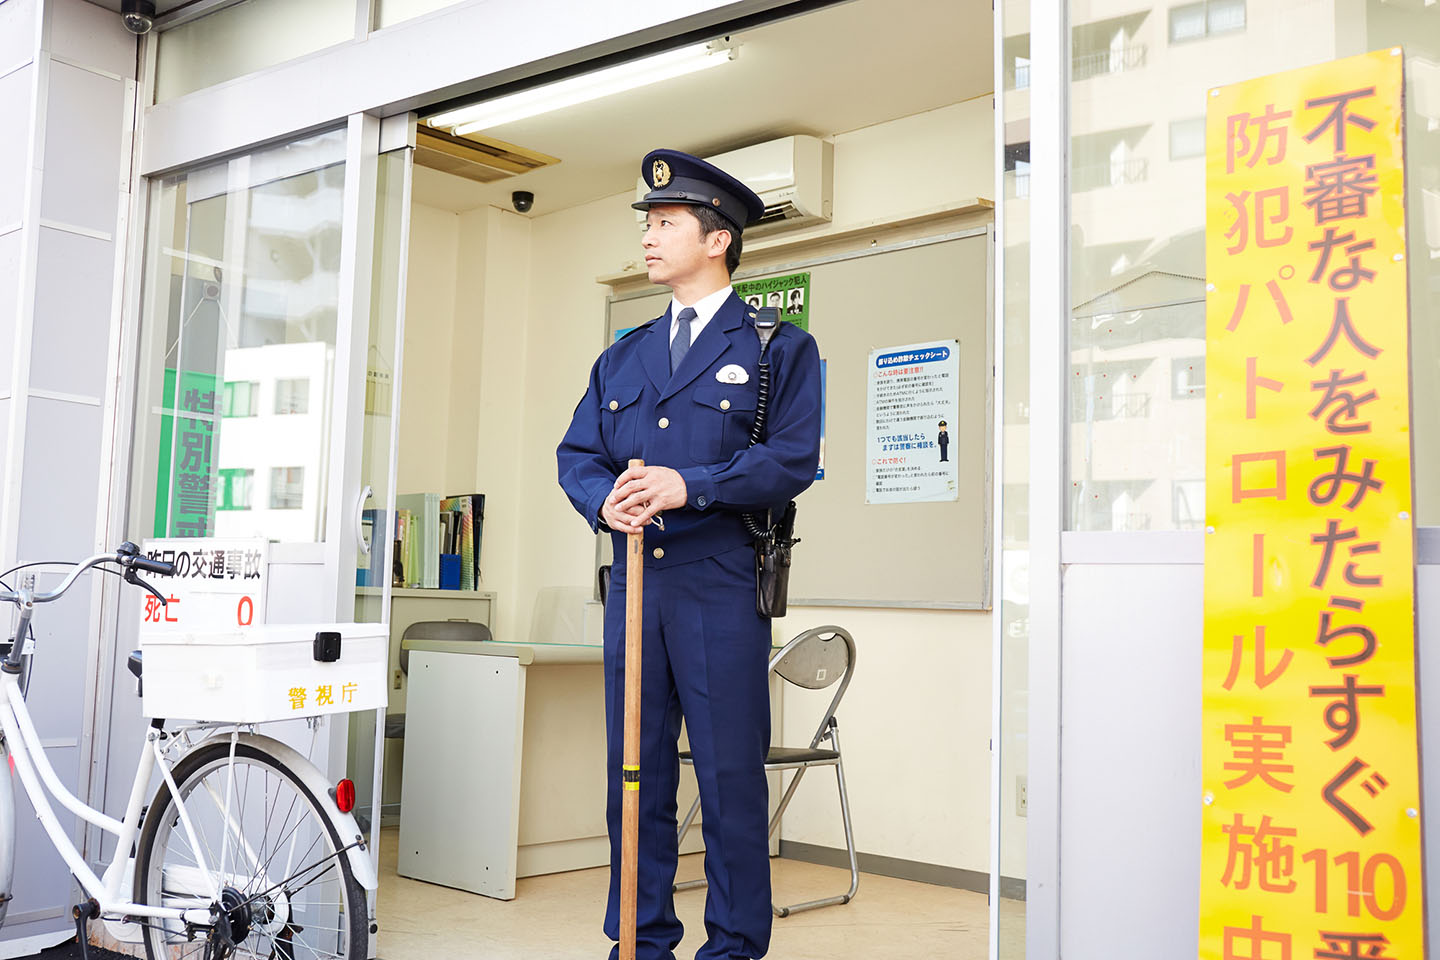 Unraveling the complicated yet simple Koban (police) system in Japan